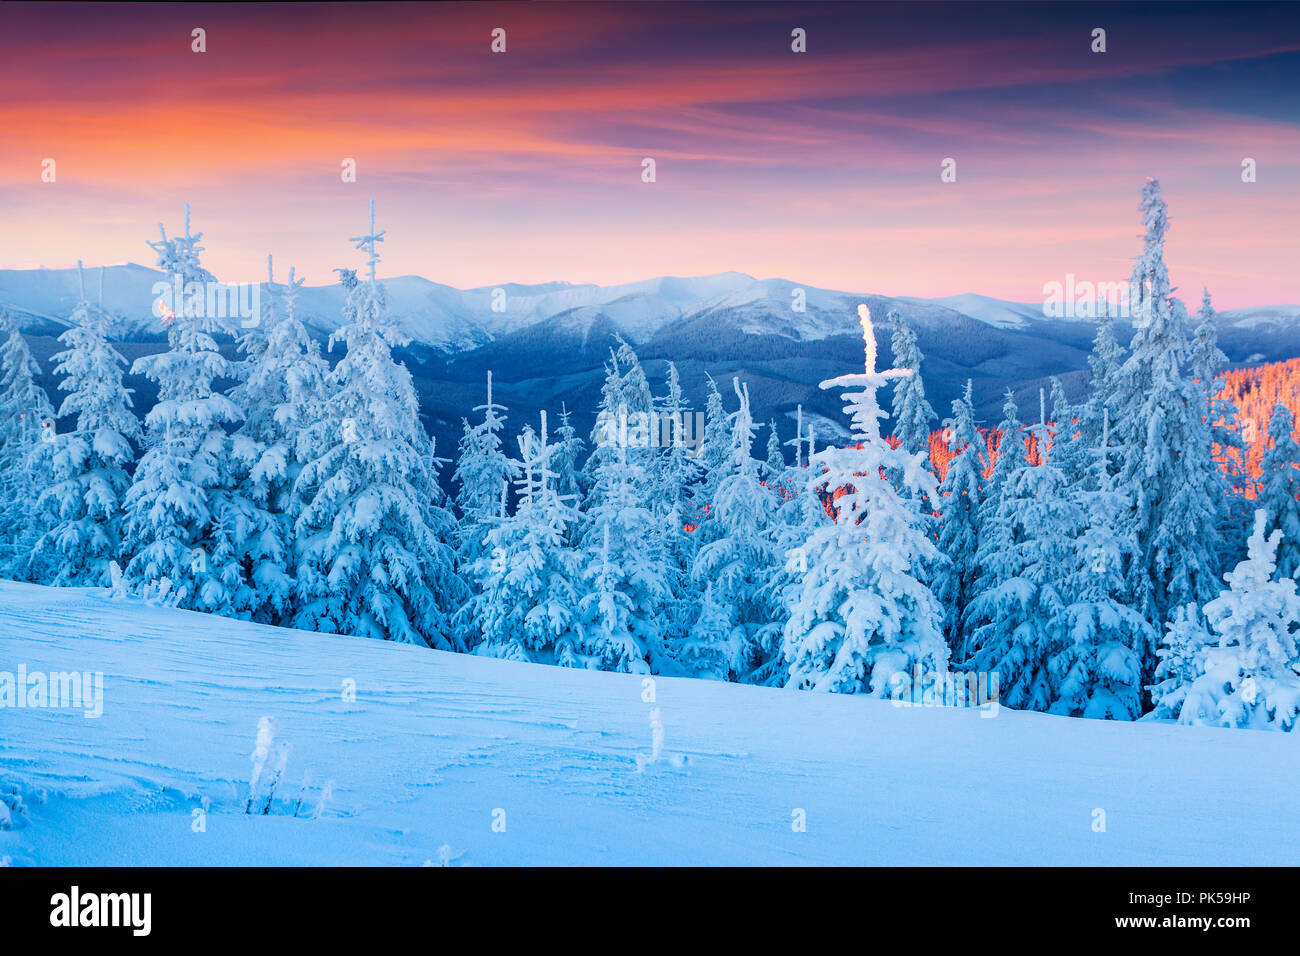 Colorful winter scene in the Carpathian mountains. Fir trees covered fresh snow at frosty morning glowing first sunlight. Stock Photo